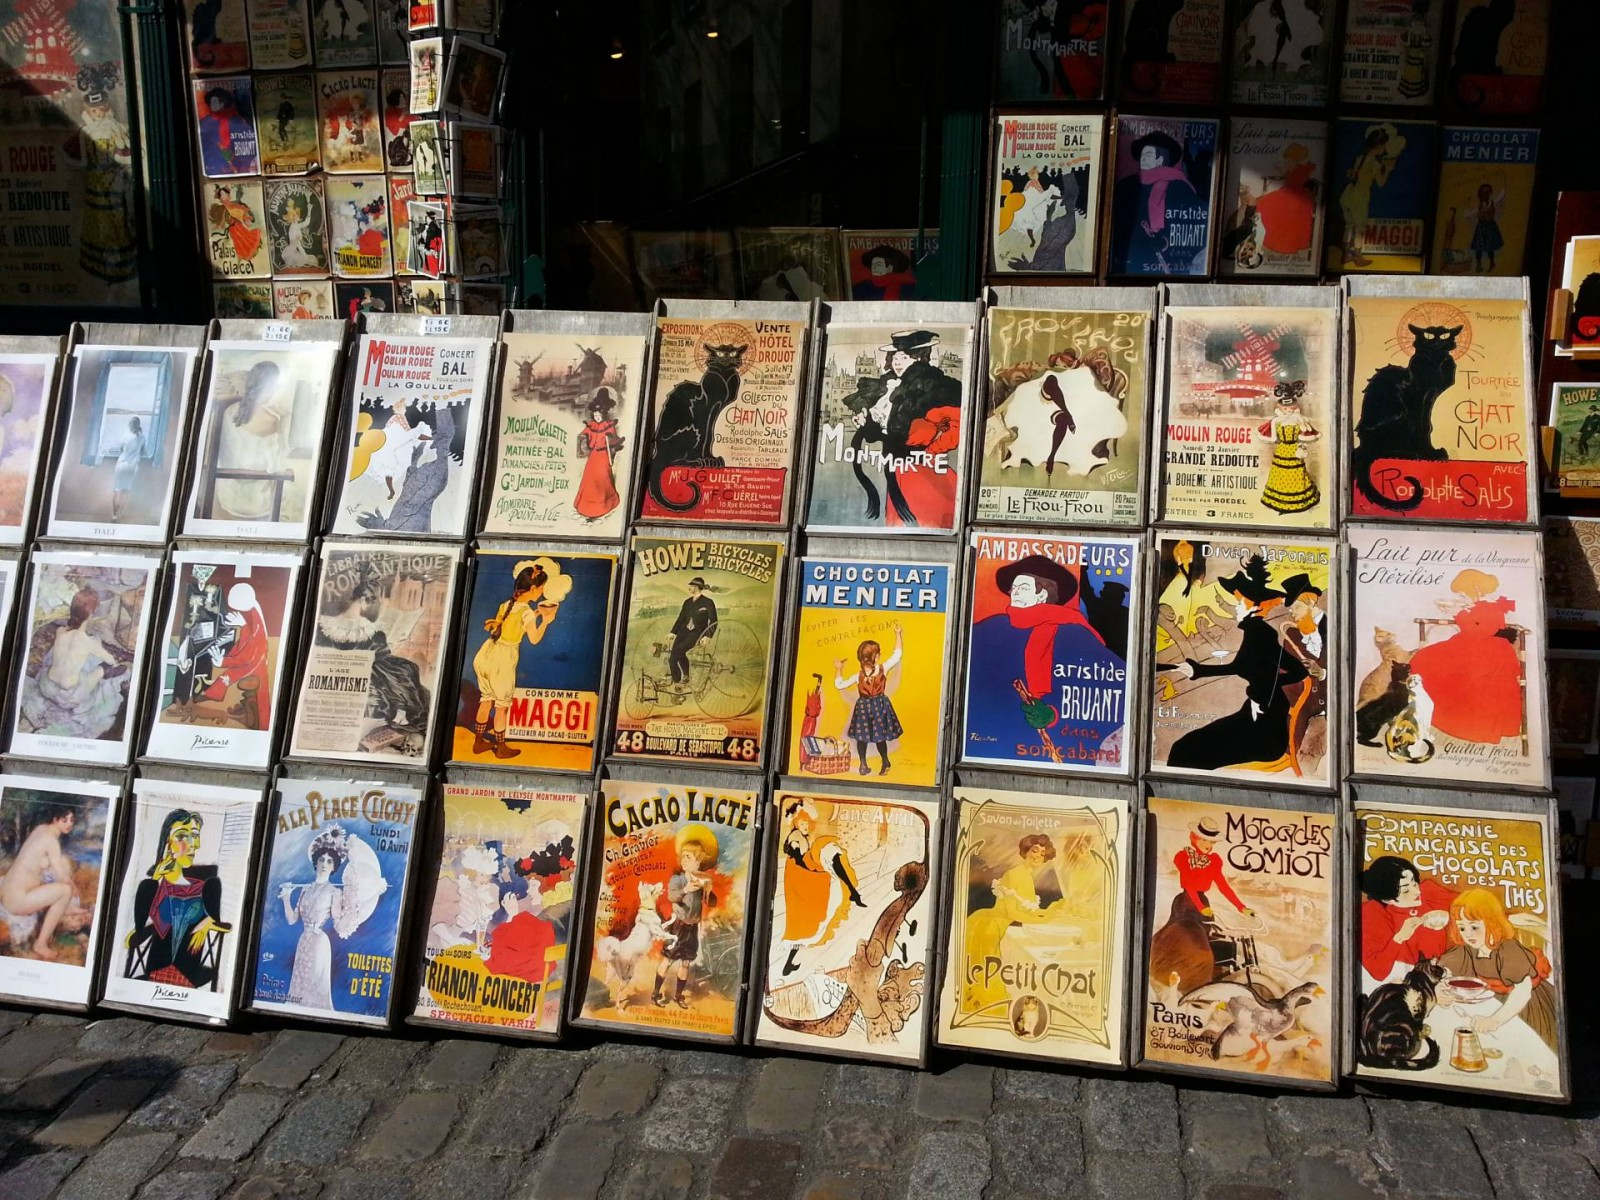 Paris Montmartre art